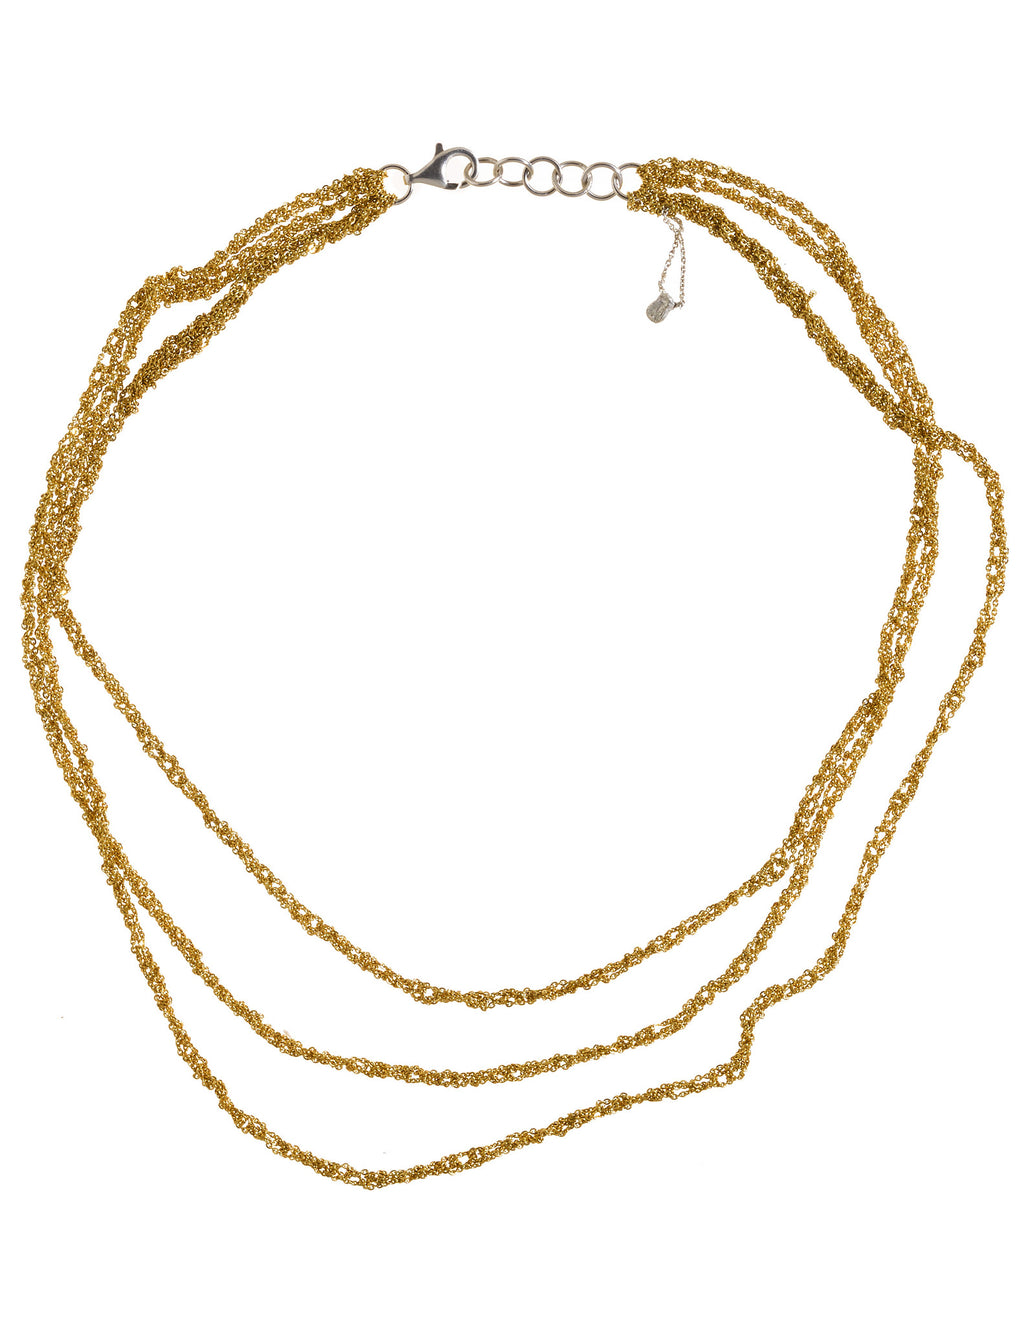 3-Tiered Simple Necklace in Gold